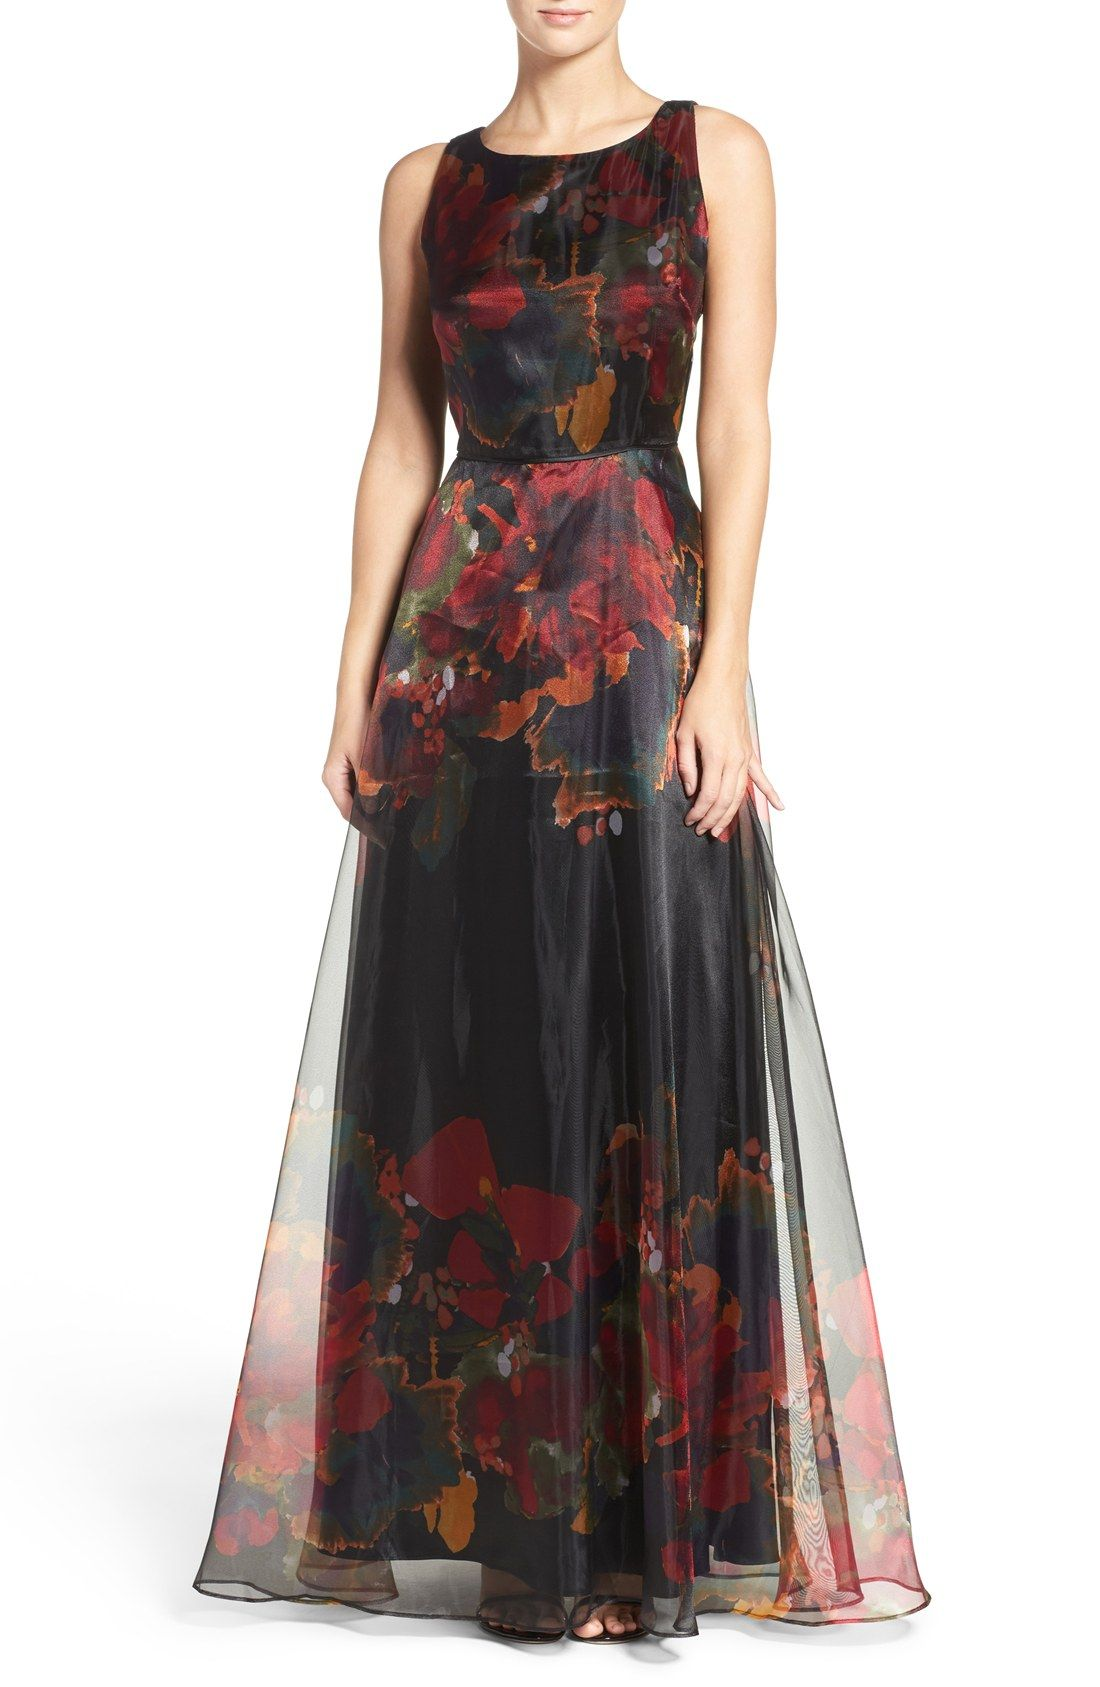 Floral print wedding dresses  Dark floral print motherofthebride dress  Print Organza Gown